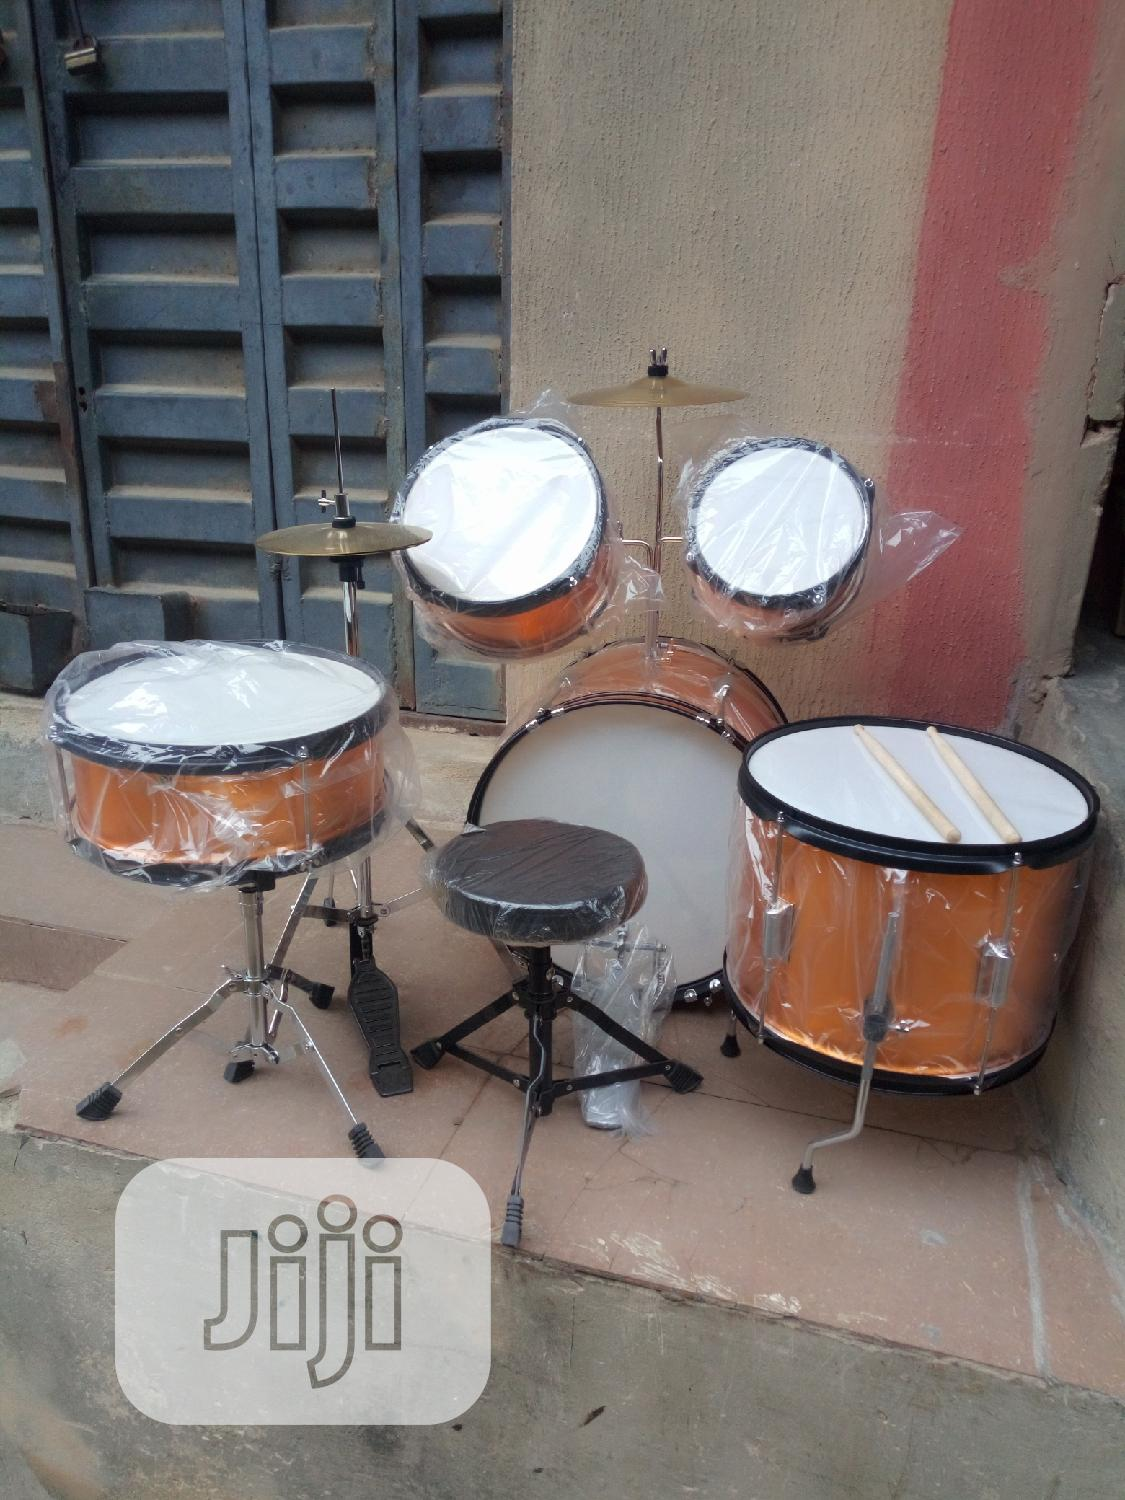 Tundra Children's Drum Set (5pc) | Musical Instruments & Gear for sale in Ojo, Lagos State, Nigeria